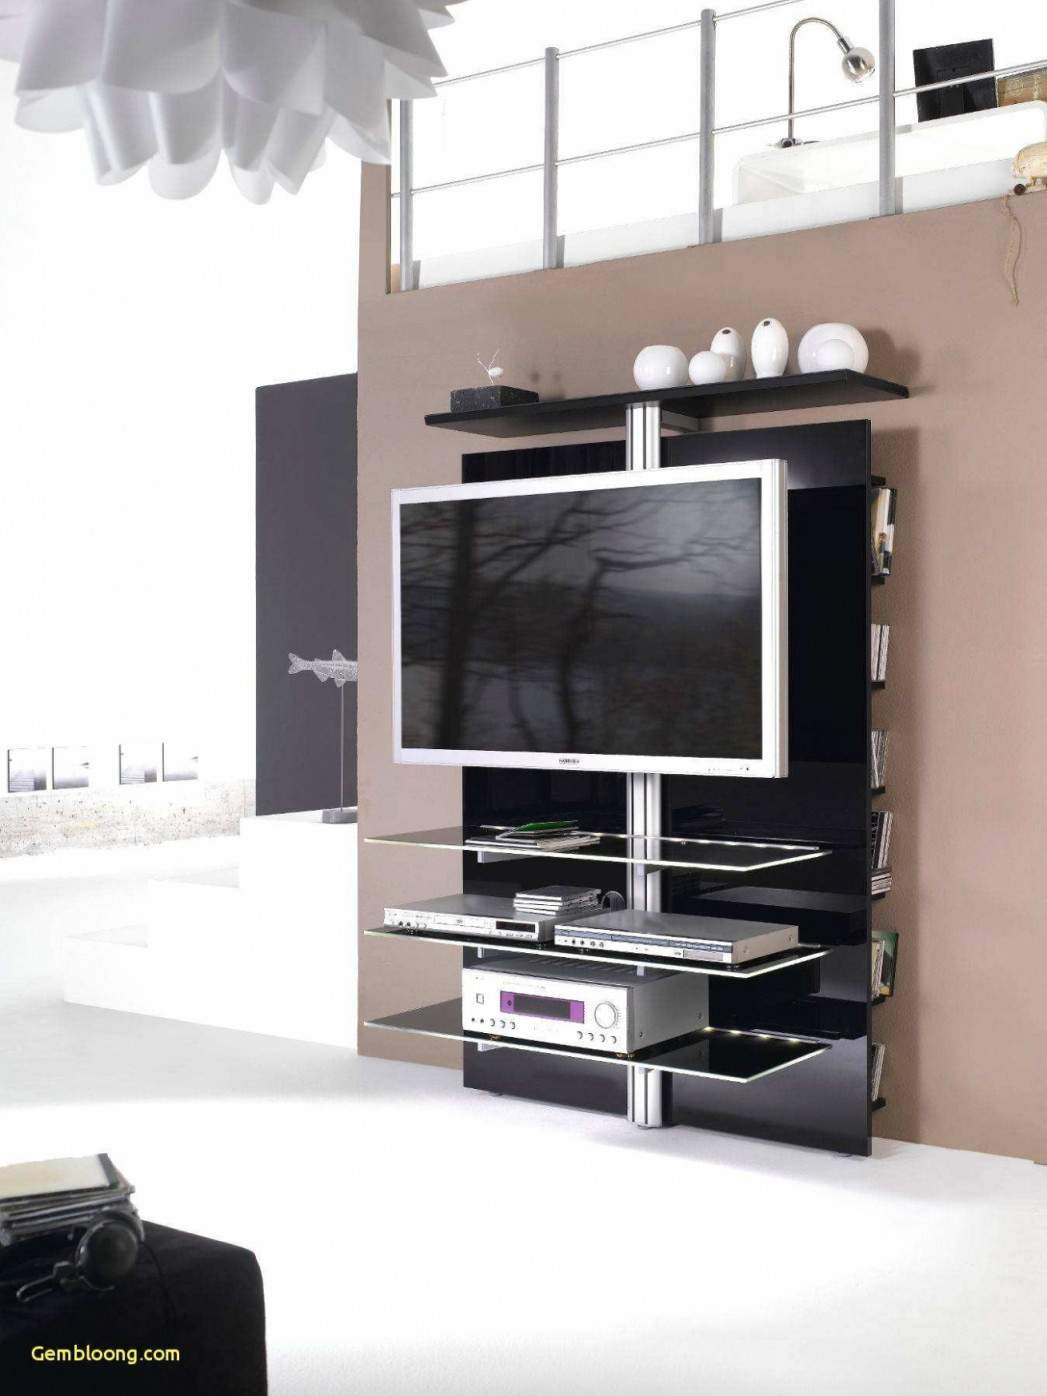 tv mobel industriedesign branche industrial design mobel yct projekte of tv mobel industriedesign